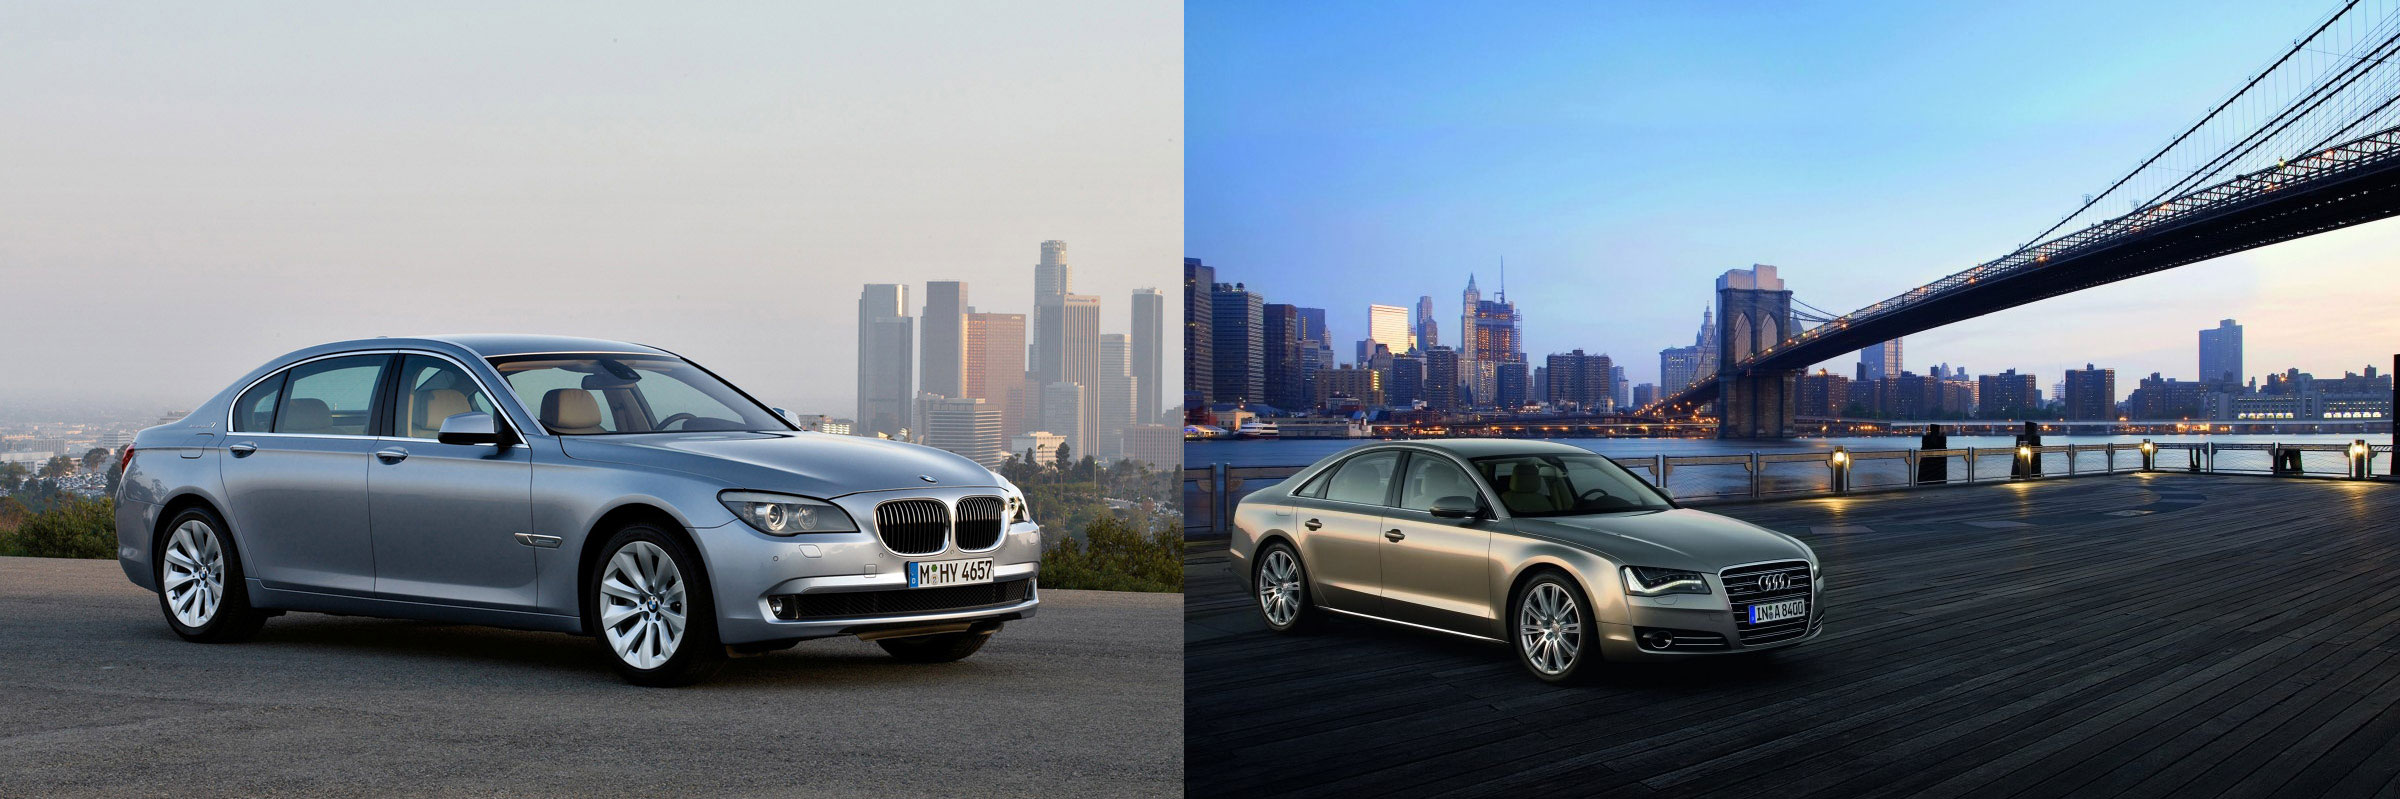 7 series vs audi a8 side front